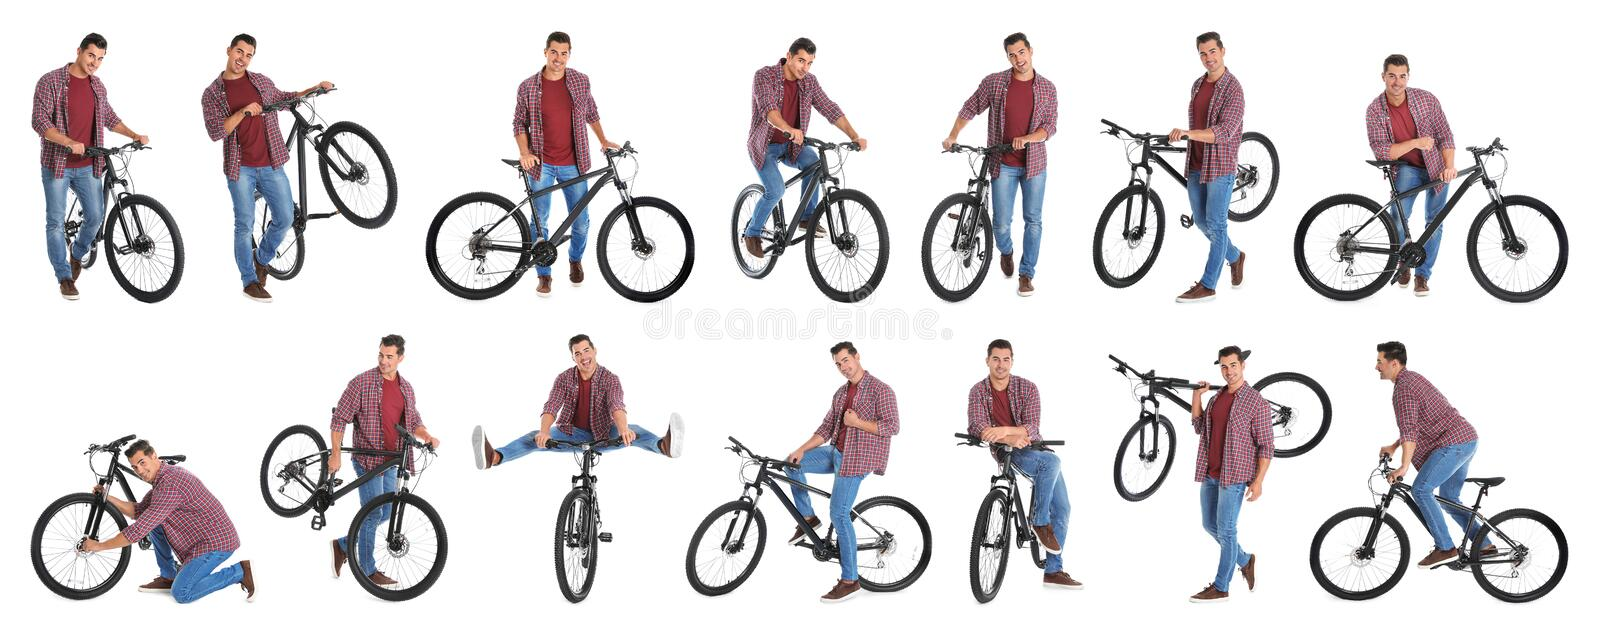 Collage of handsome young man with bicycle on background stock photo